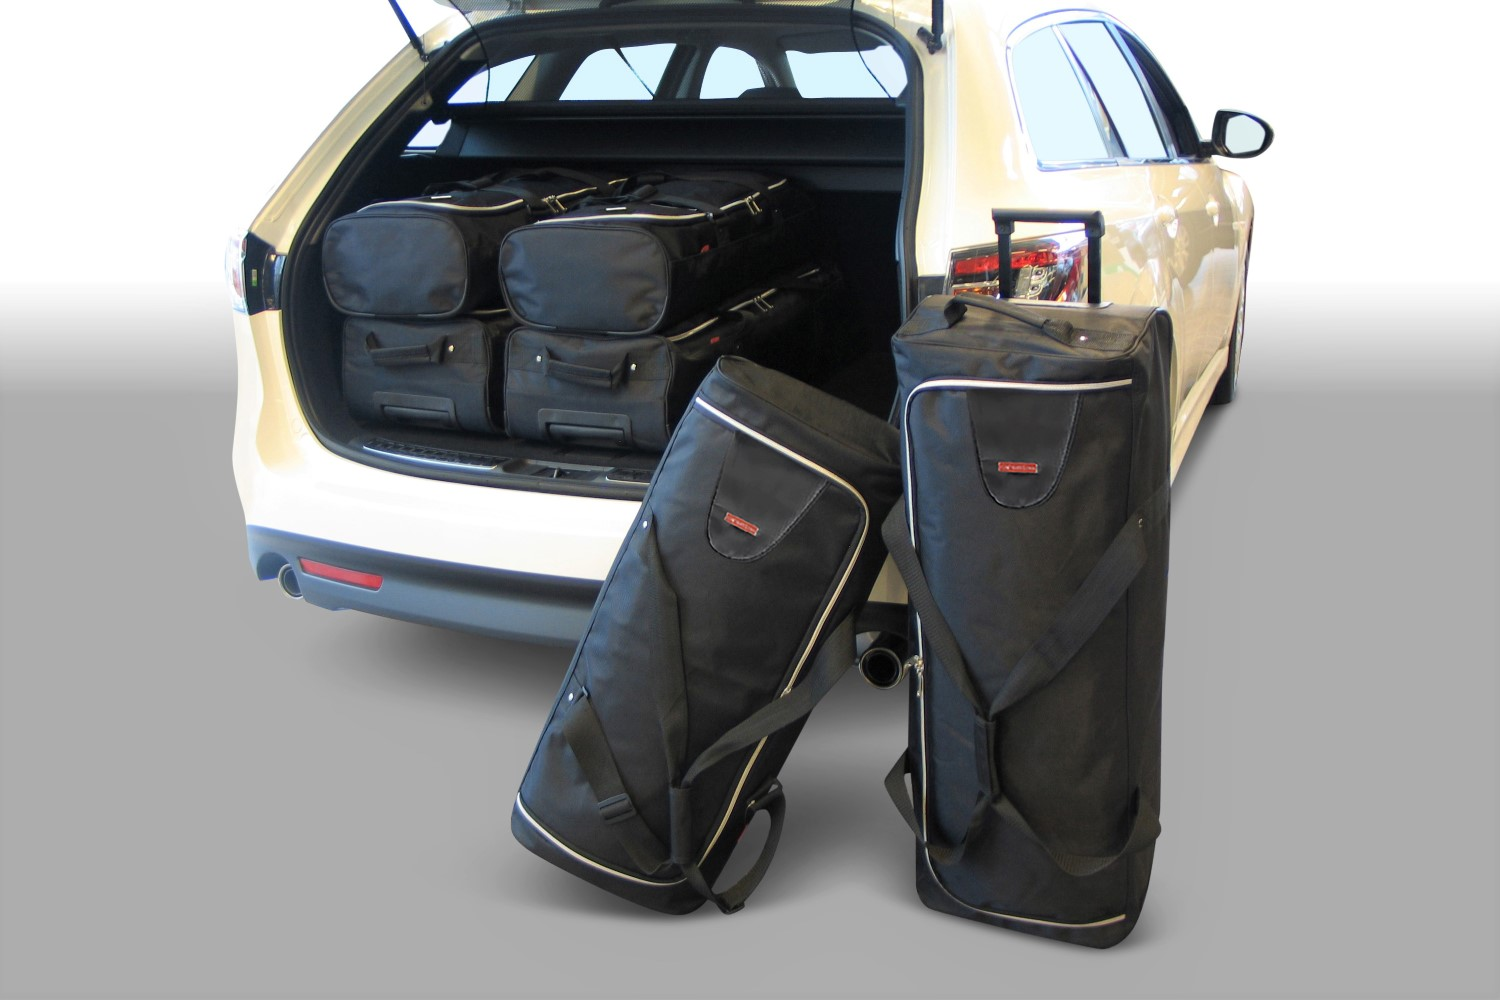 Mazda Mazda6 (GH) 2008-2012 wagon Car-Bags.com travel bag set (1)